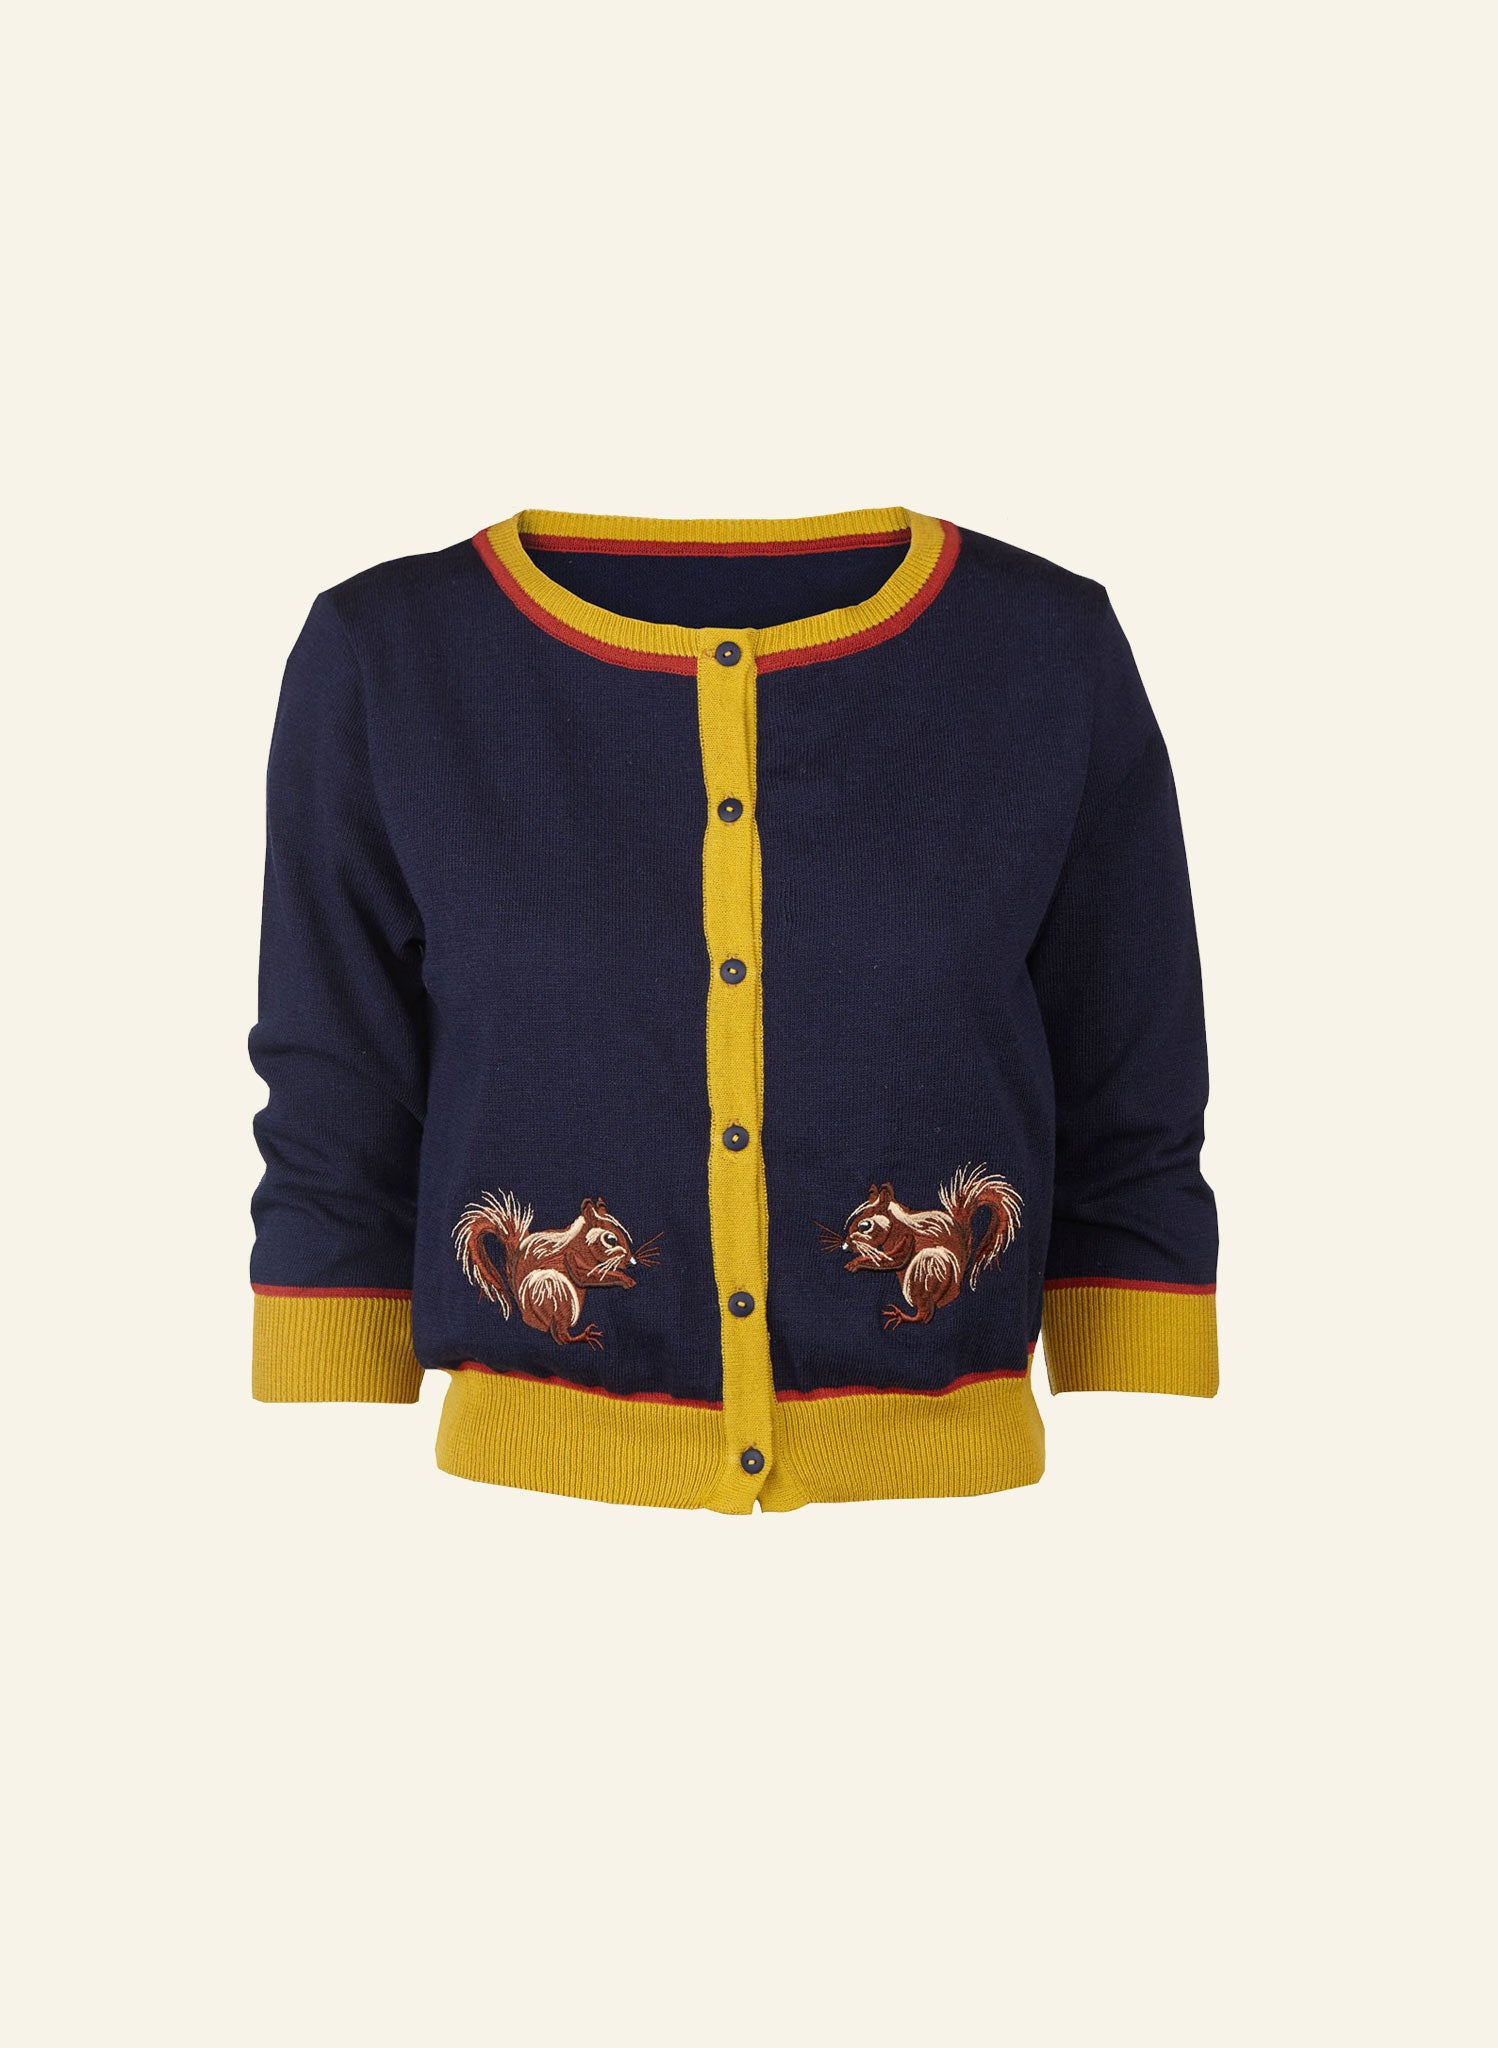 Vera - Navy Squirrel Cardigan - Organic Cotton